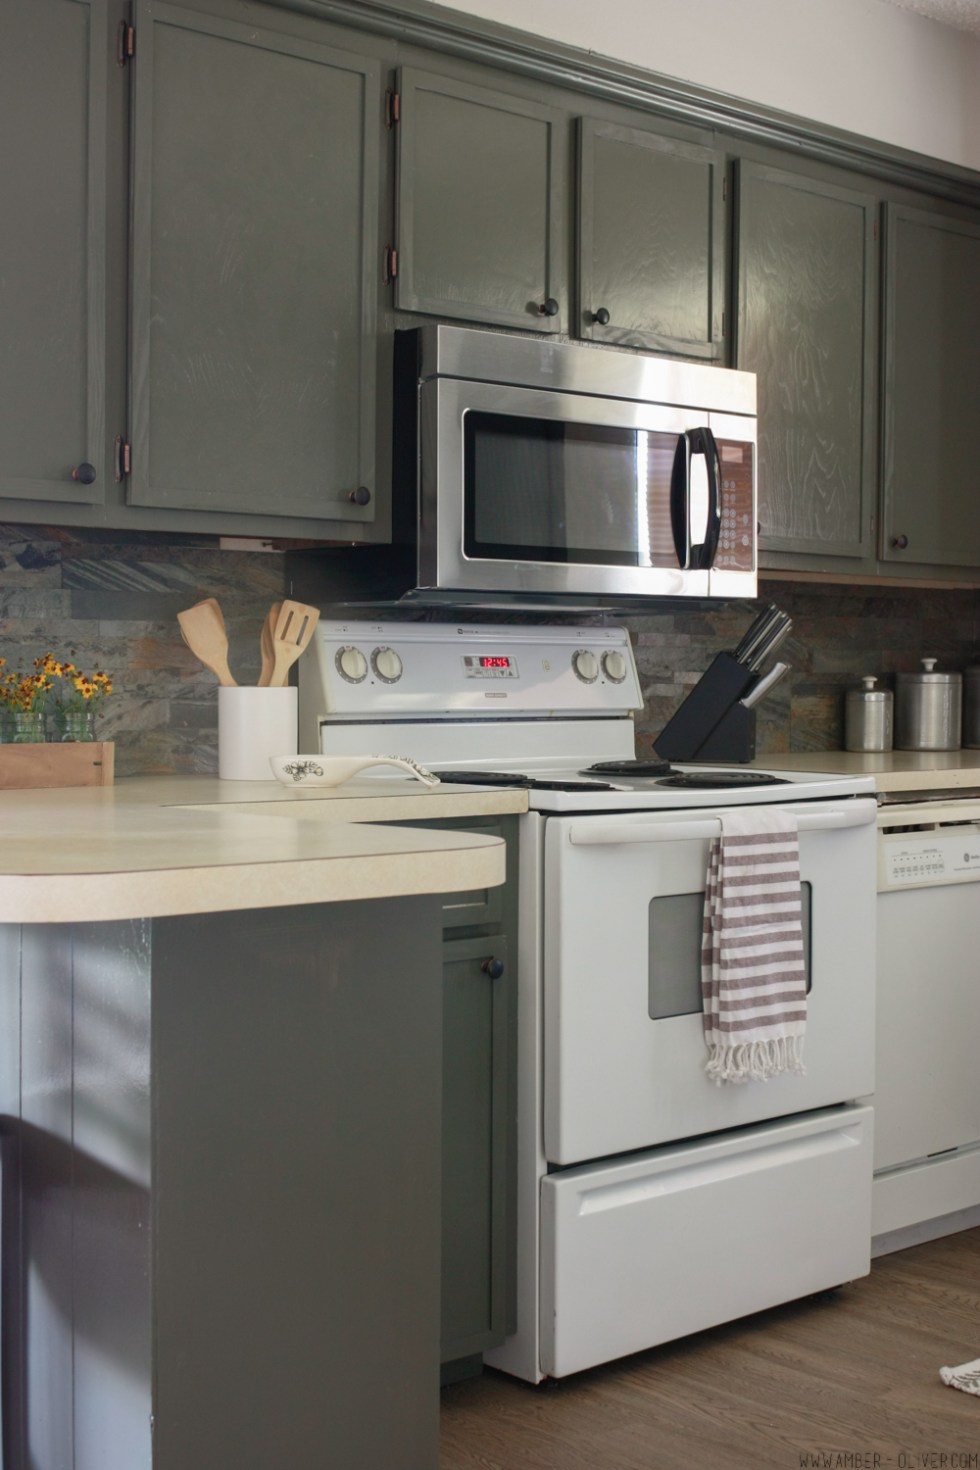 How To Update Old Kitchen Cabinets - Kitchen remodel on a budget!